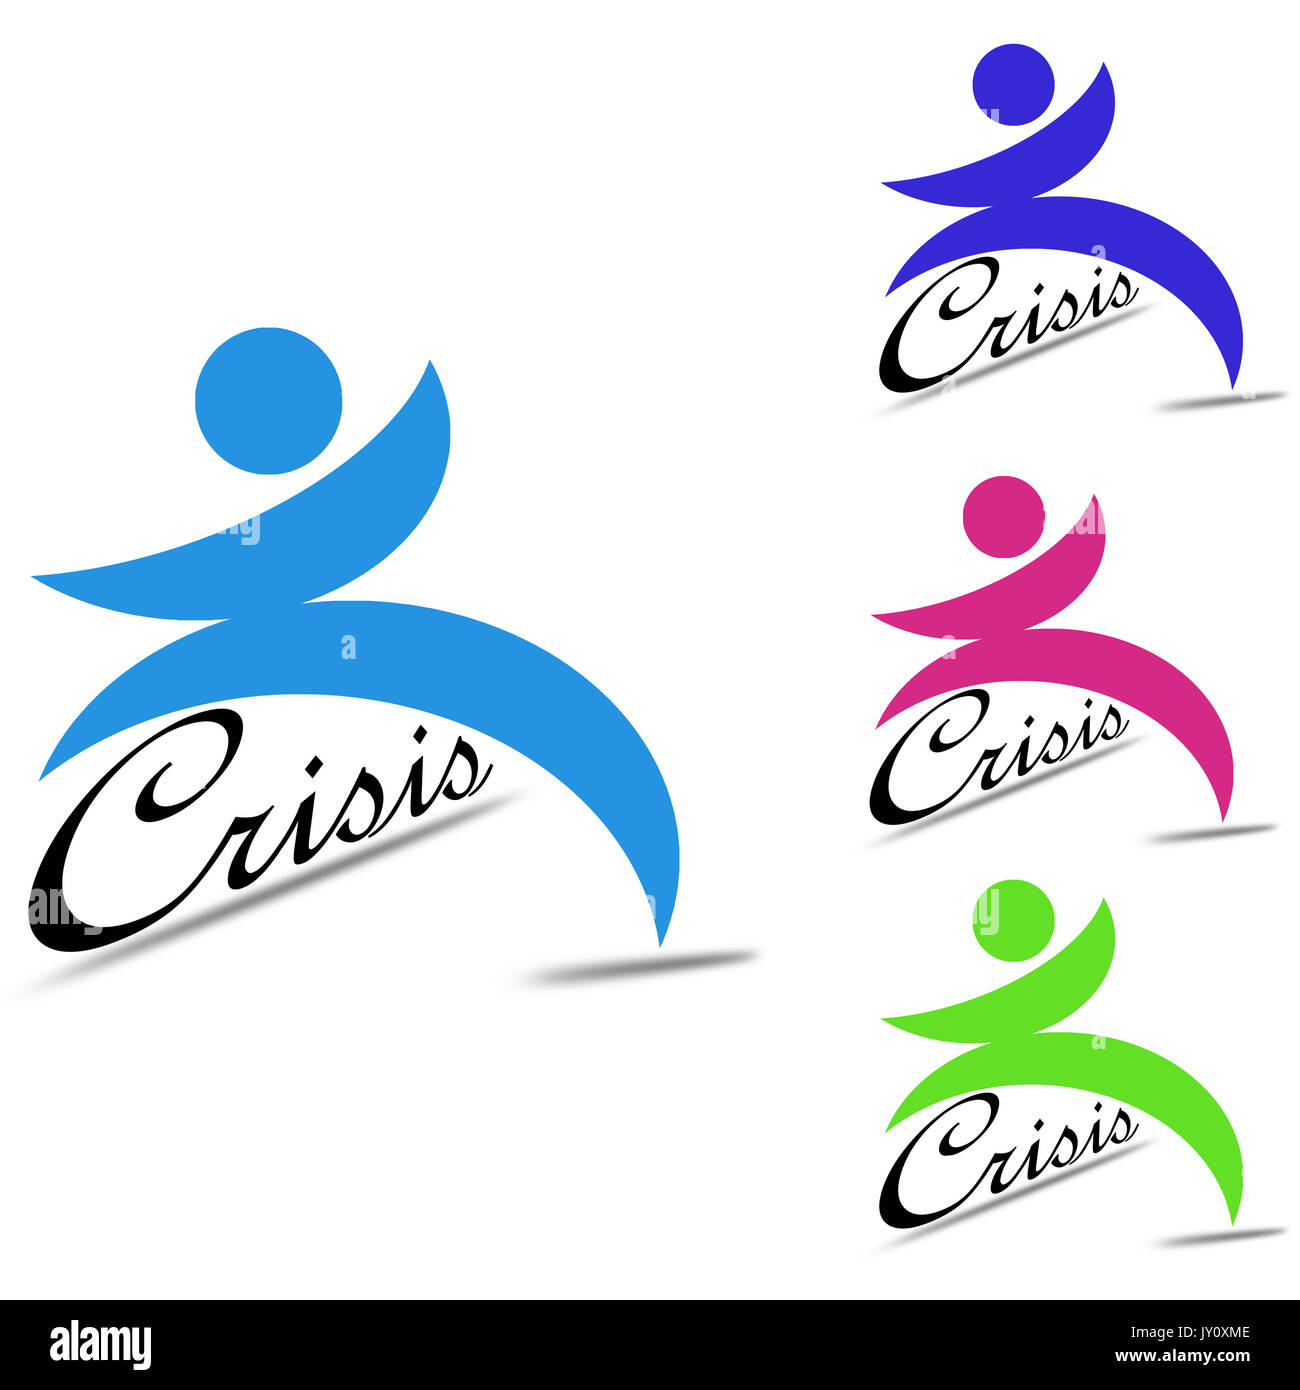 Overcome crisis image with hi-res rendered artwork that could be used for any graphic design. - Stock Image